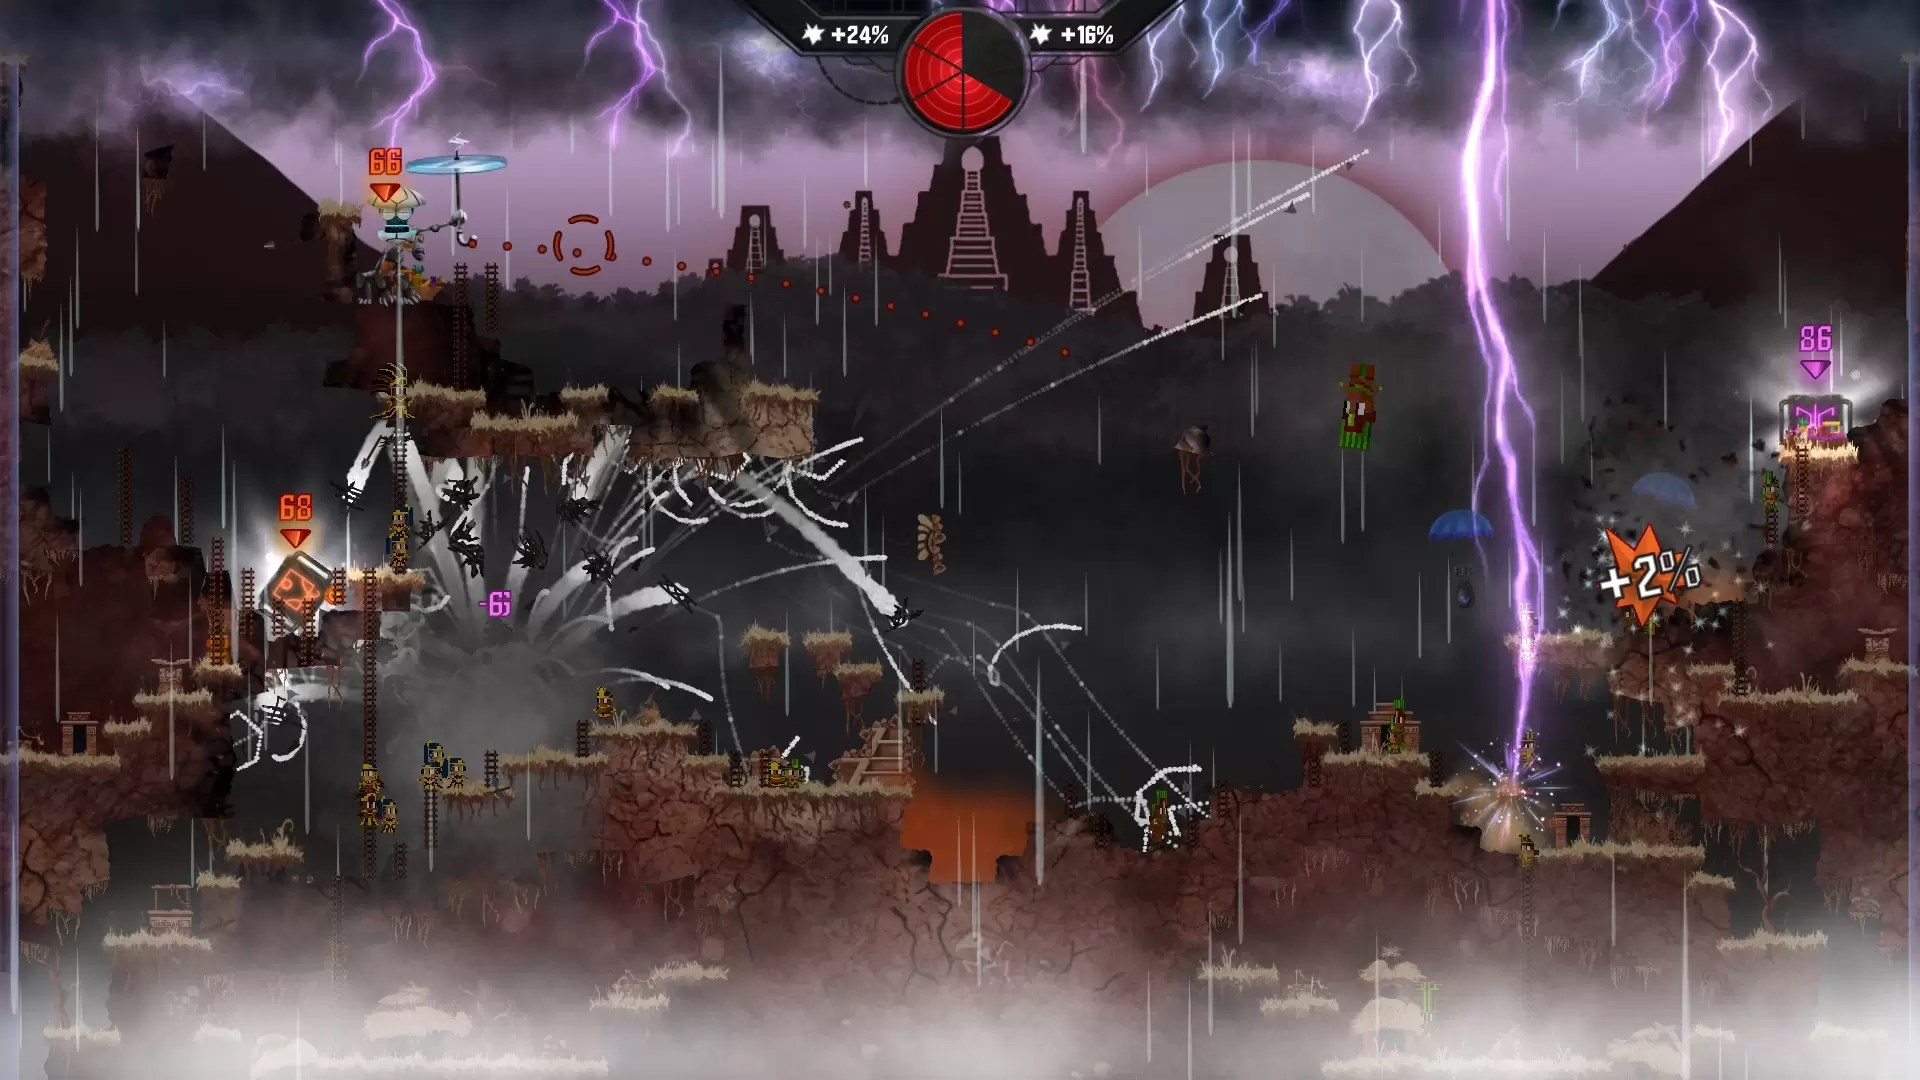 Mayan Death Robots Arena Launching For Xbox One On May